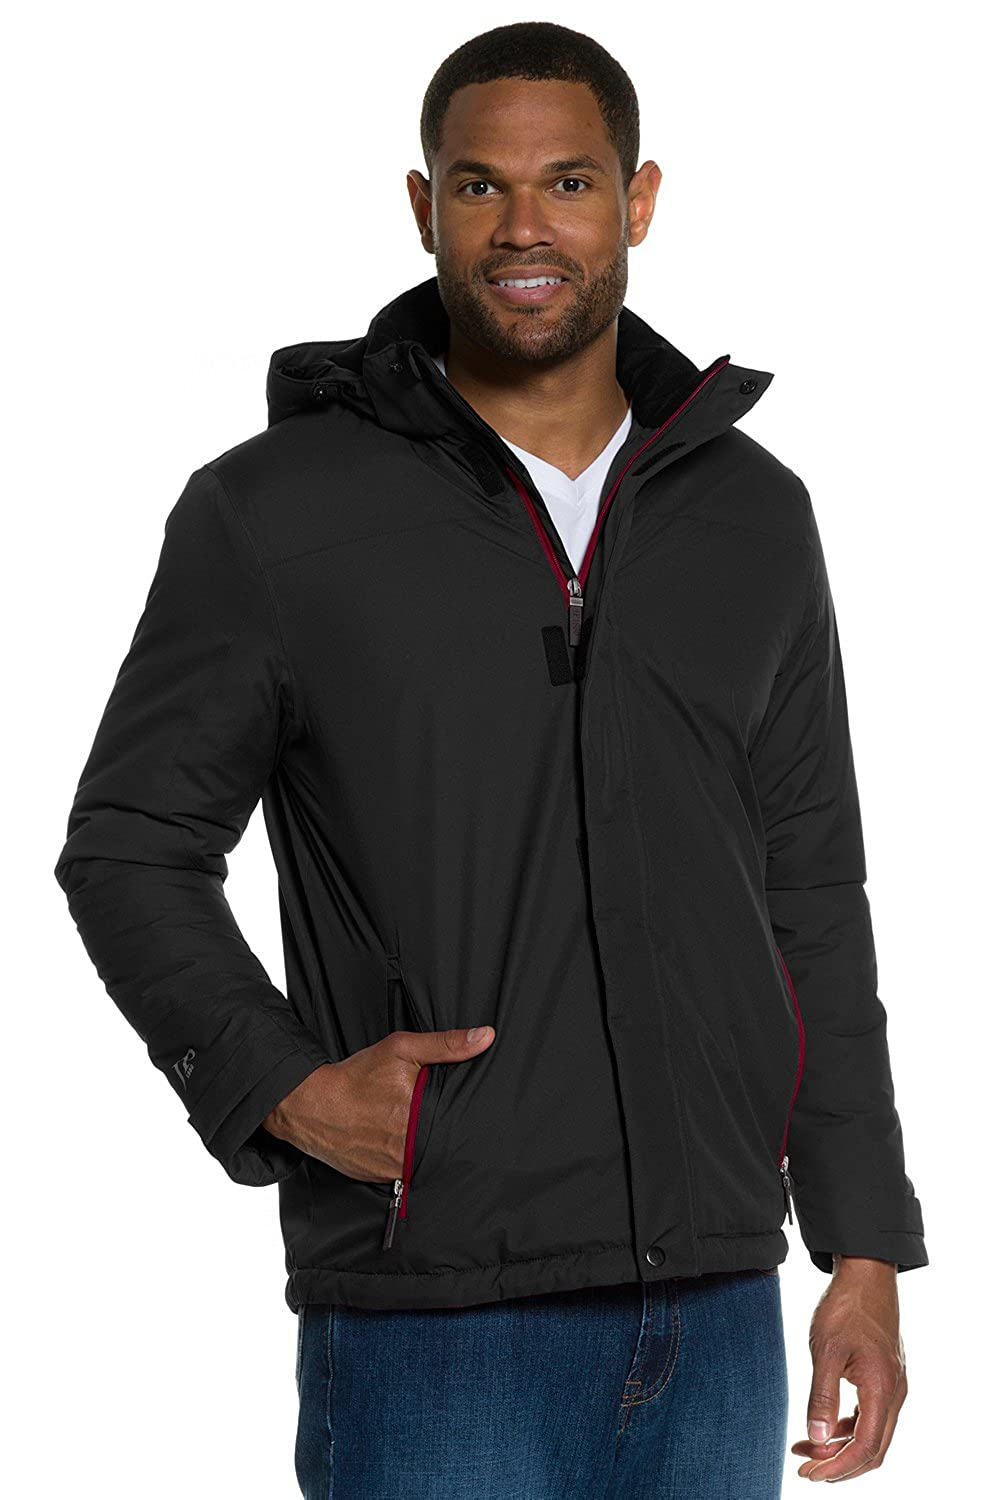 JP1880 Men's Big & Tall Wind & Waterproof Jacket Black X-Large 705645 10-XL